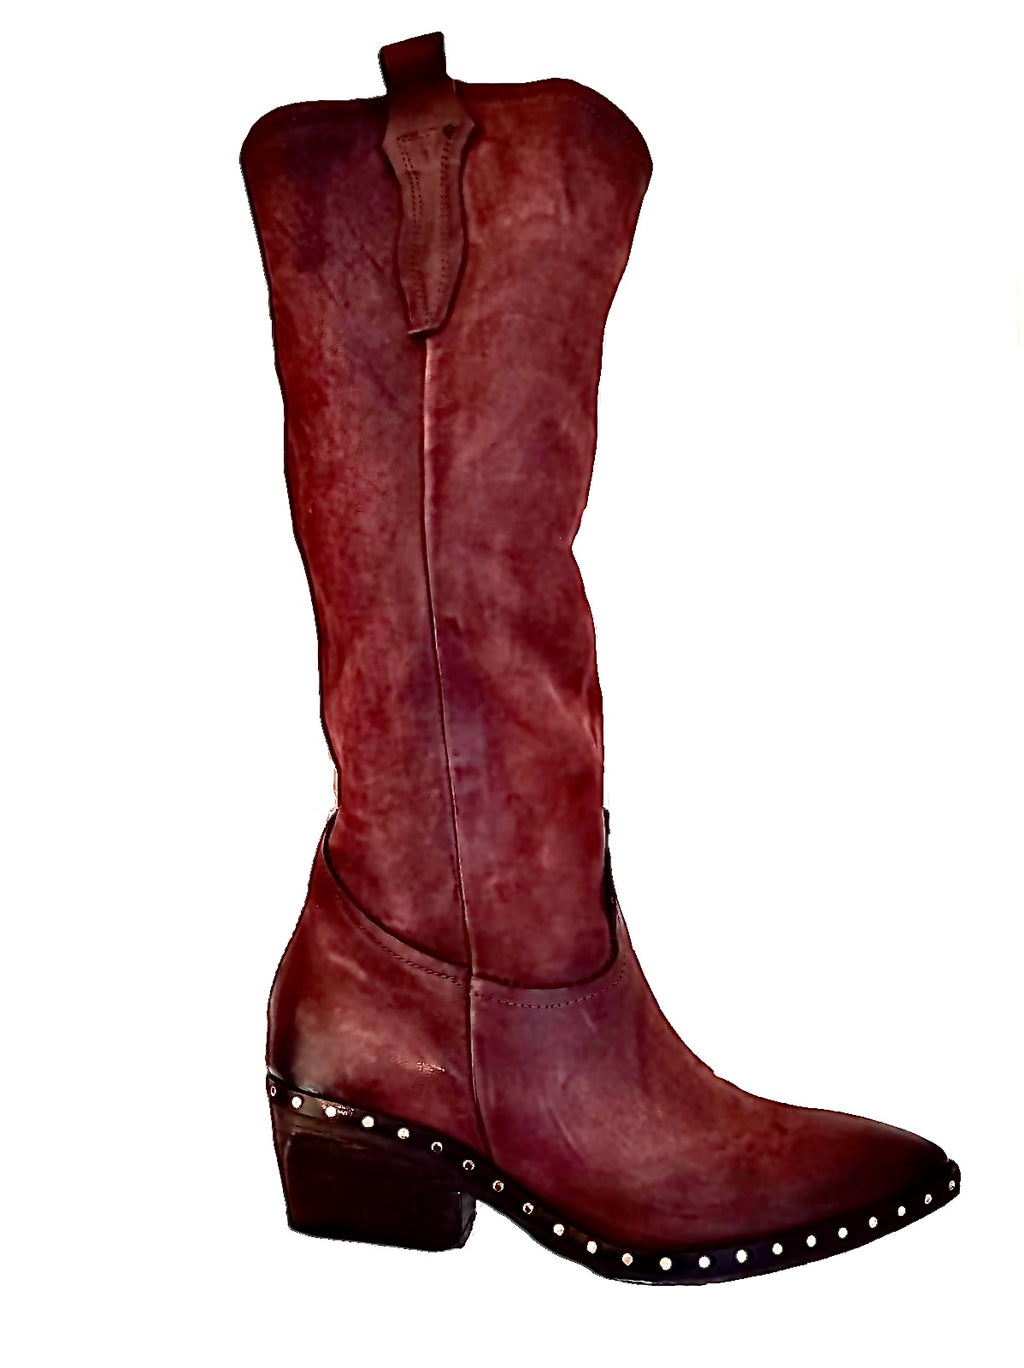 AS98 Tall boot Burgandy